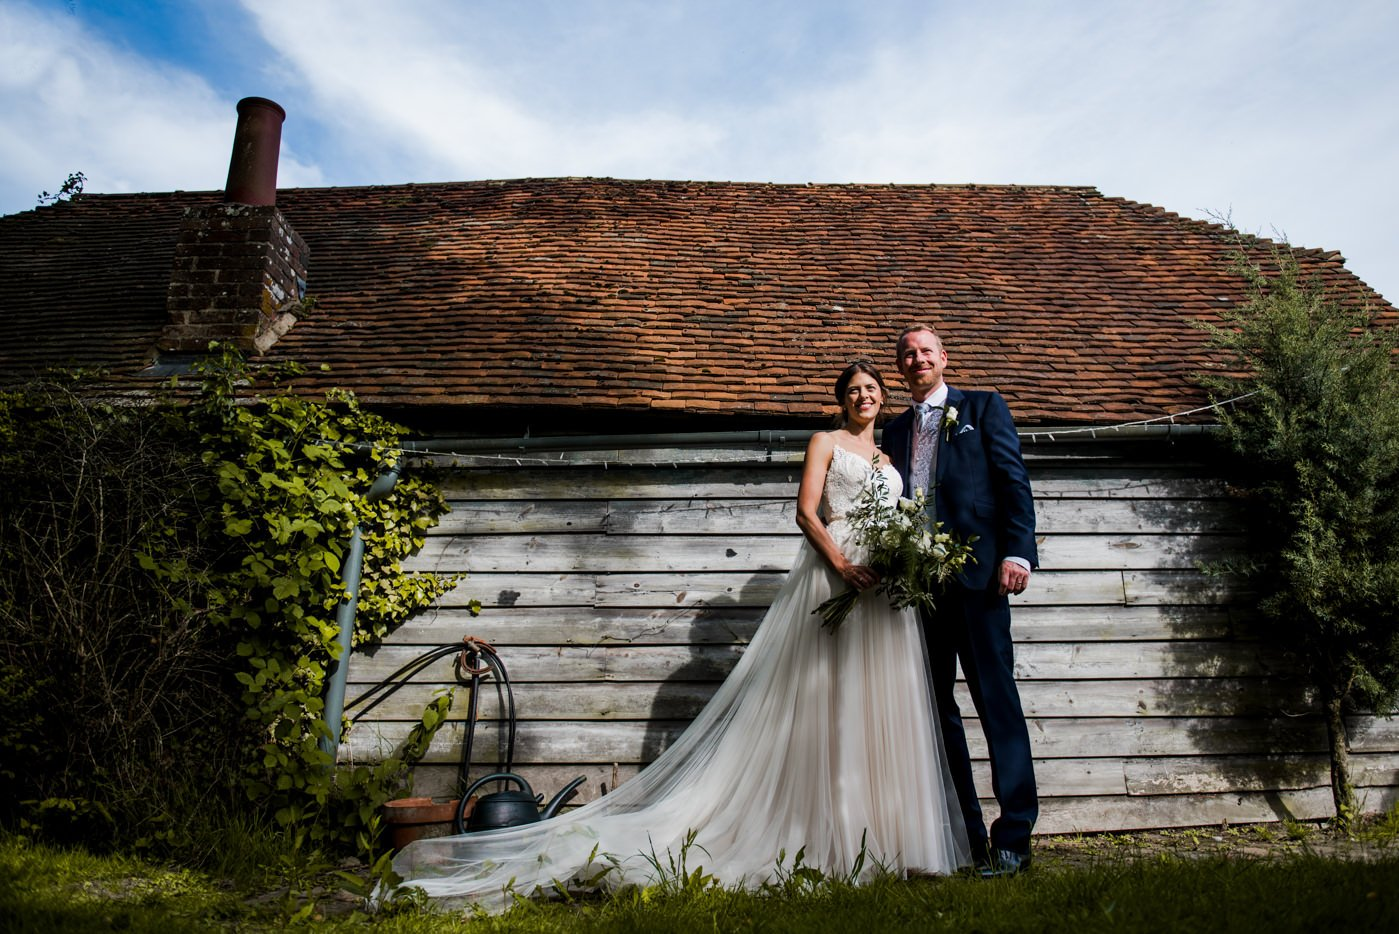 Creative Sprivers Mansion Wedding Photography Portrait